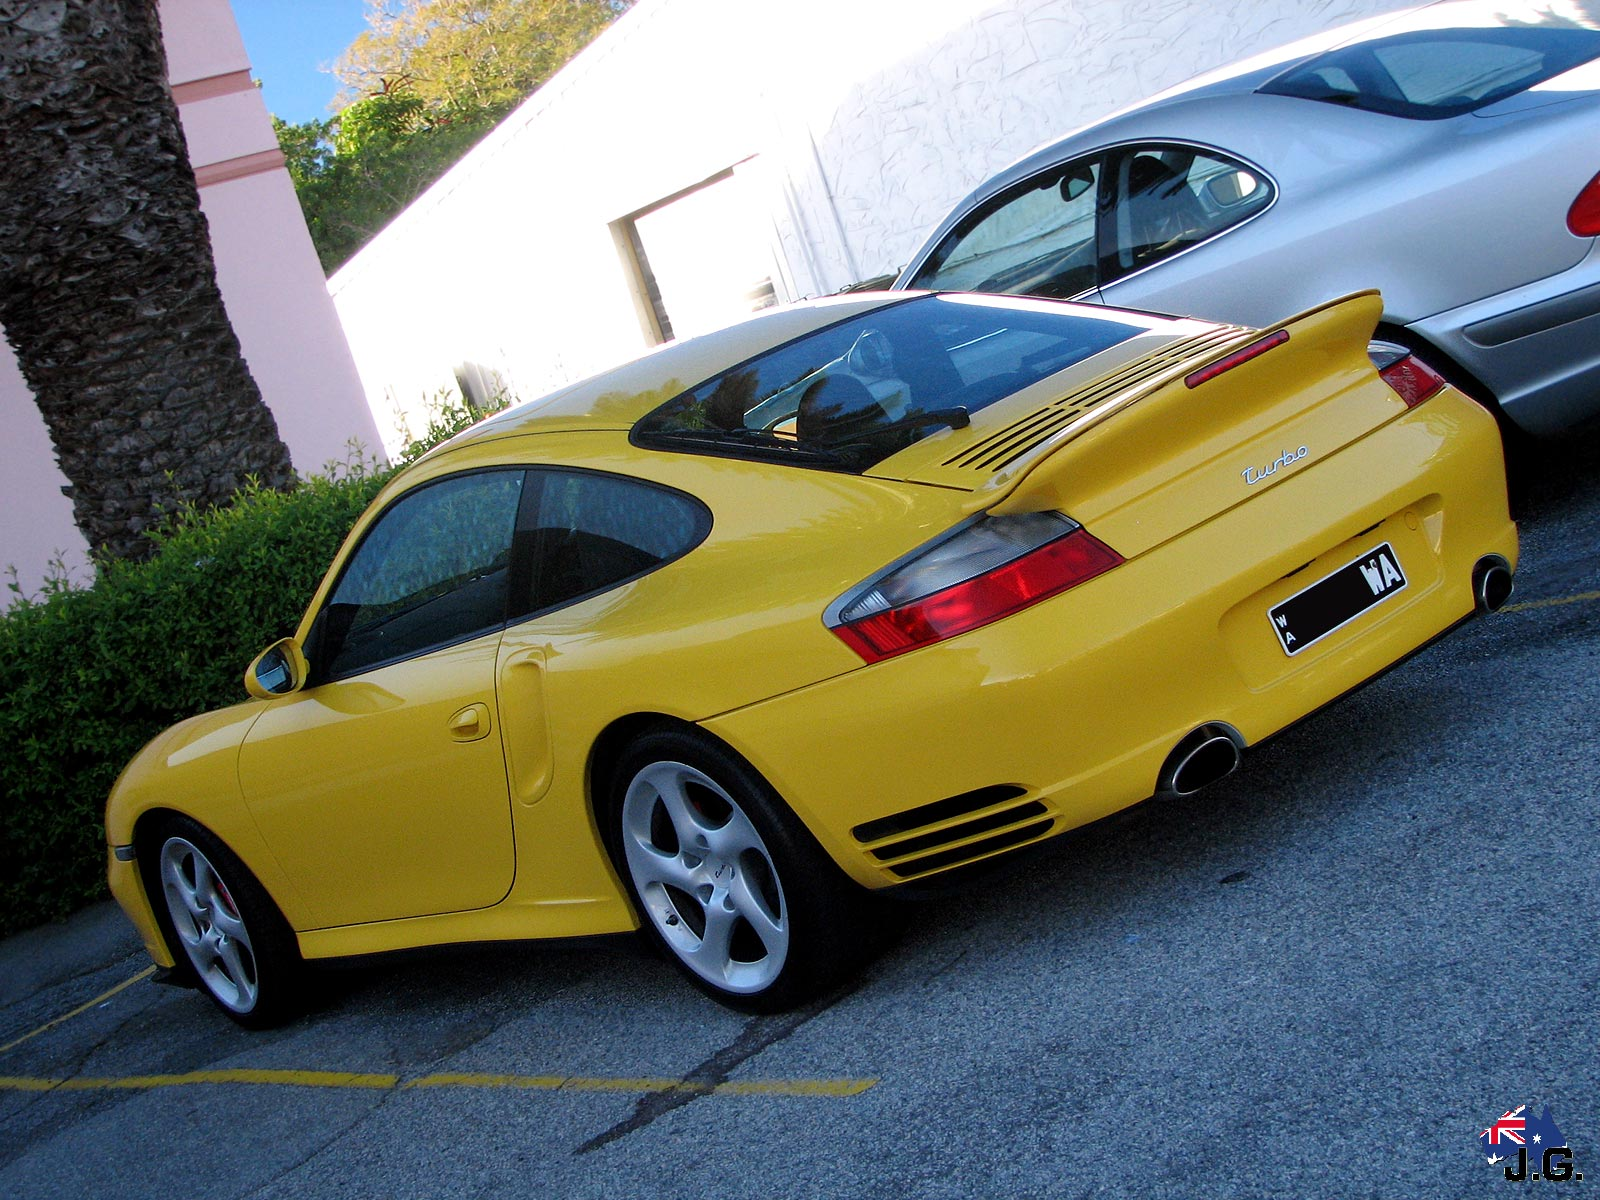 http://aussieexotics.com/drivers/albums/imported/dingo/perth-spotting/porsche-996-turbo-(14).jpg